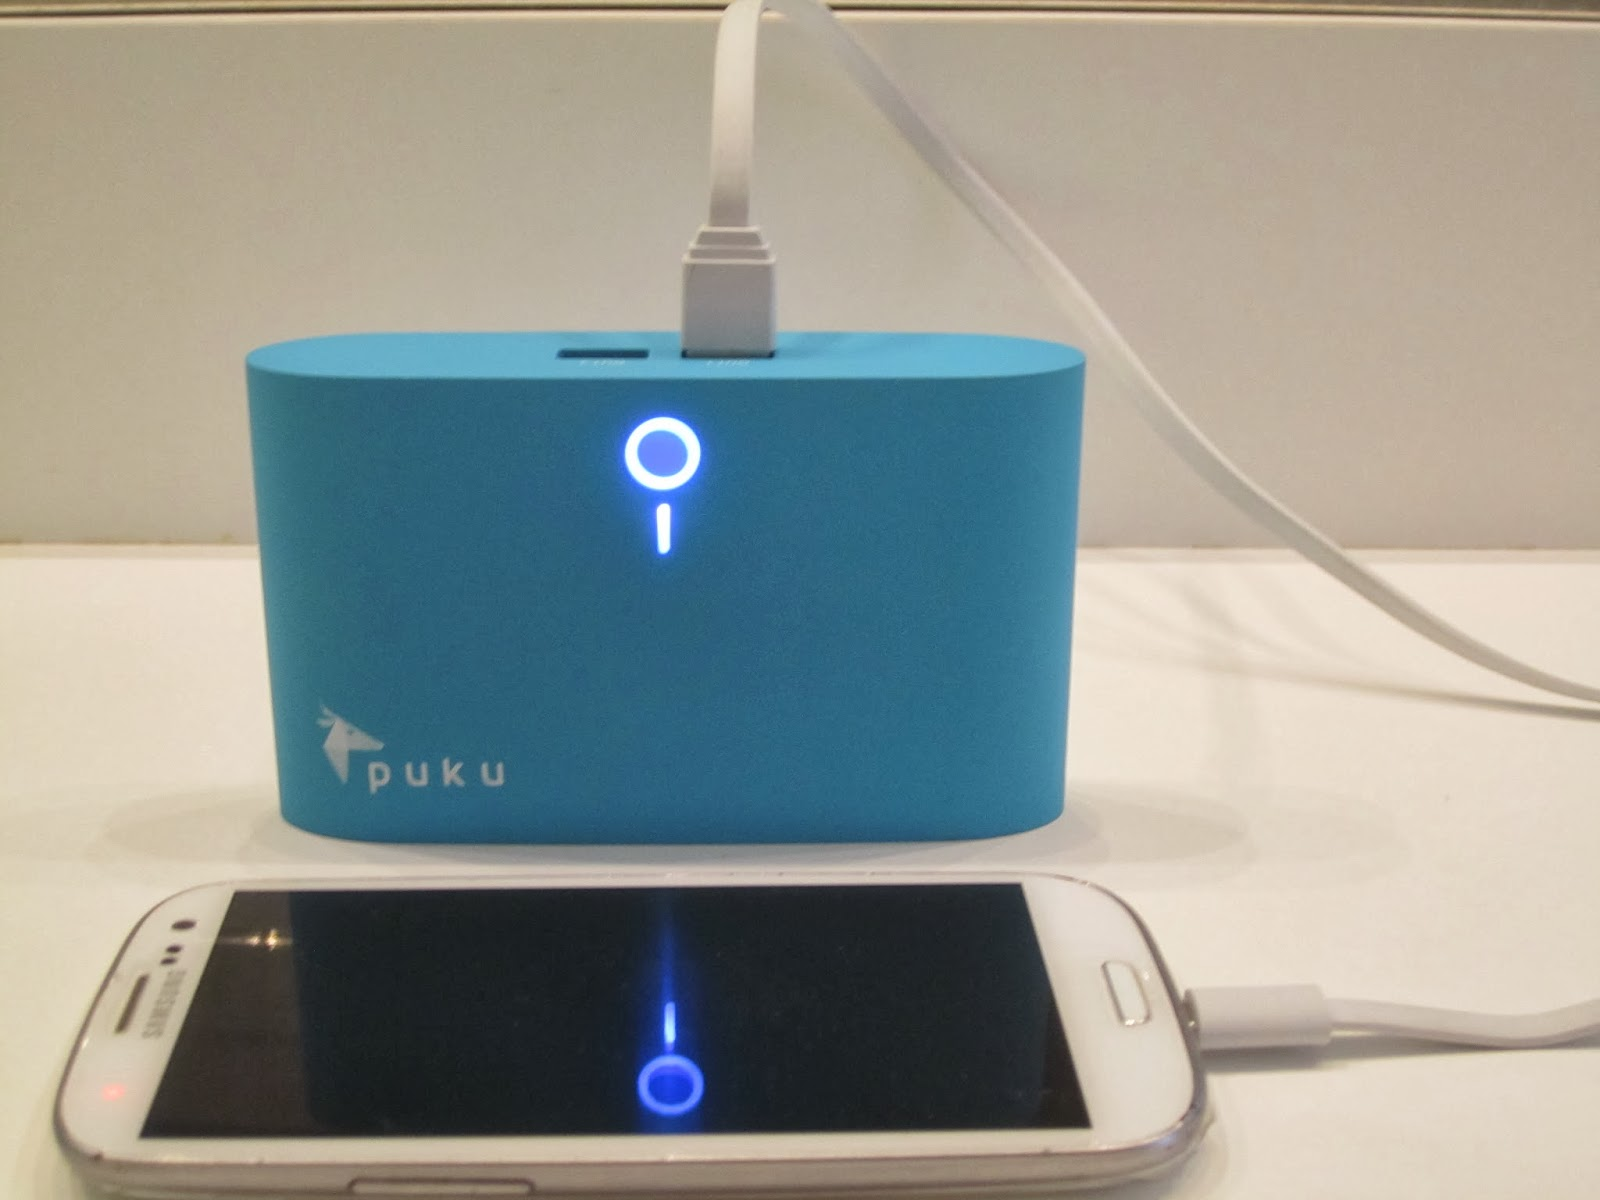 Charging phone with the Puku S8 Charger